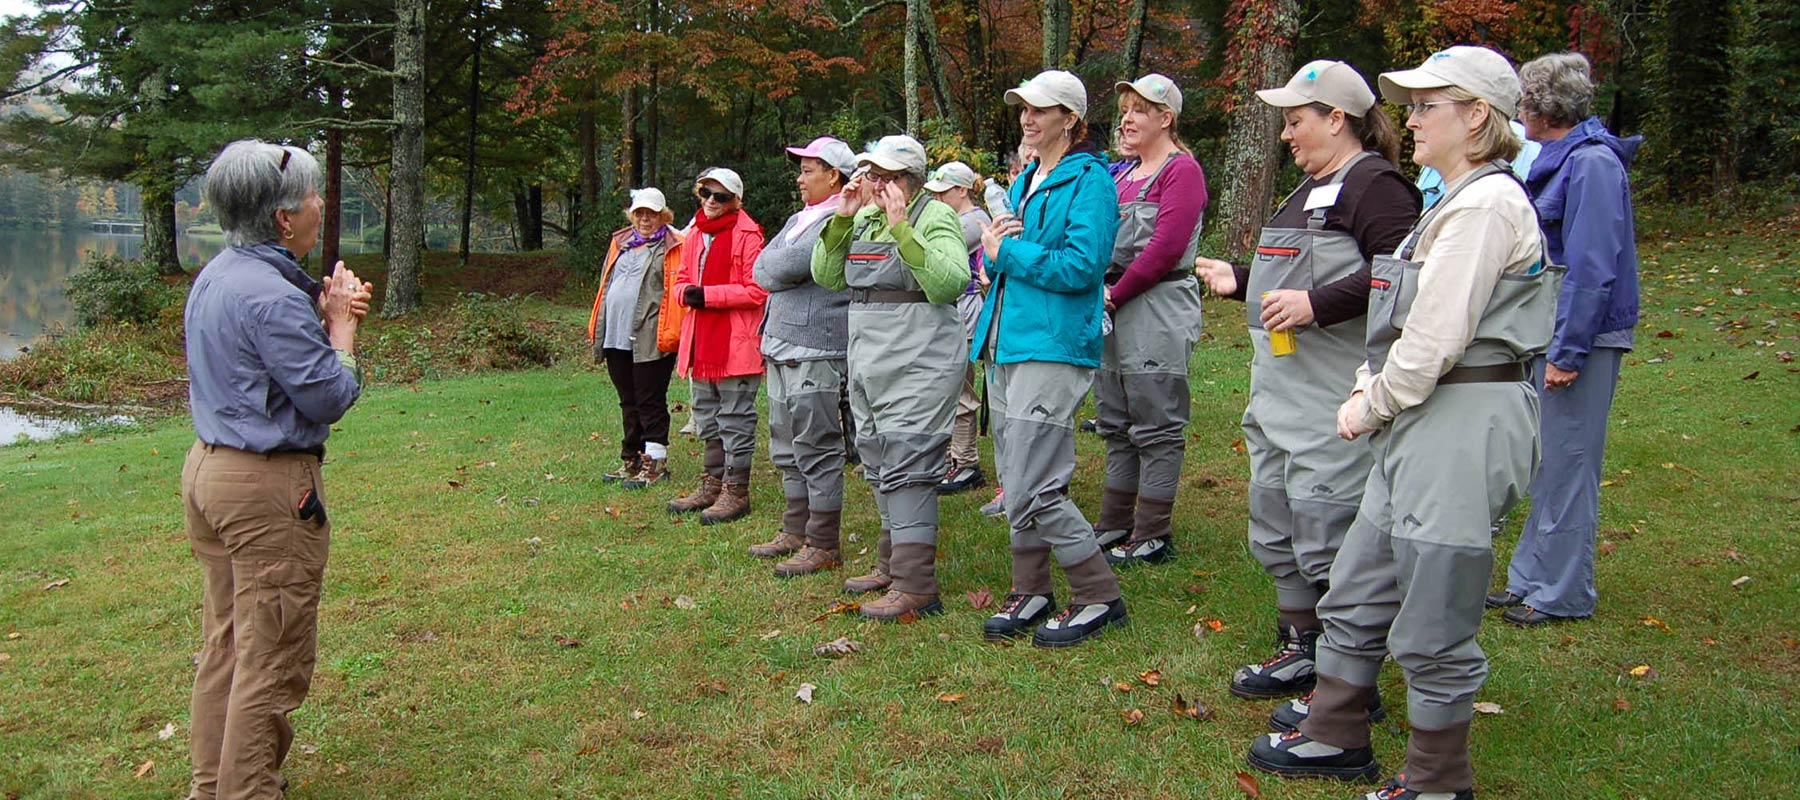 group-in-waders